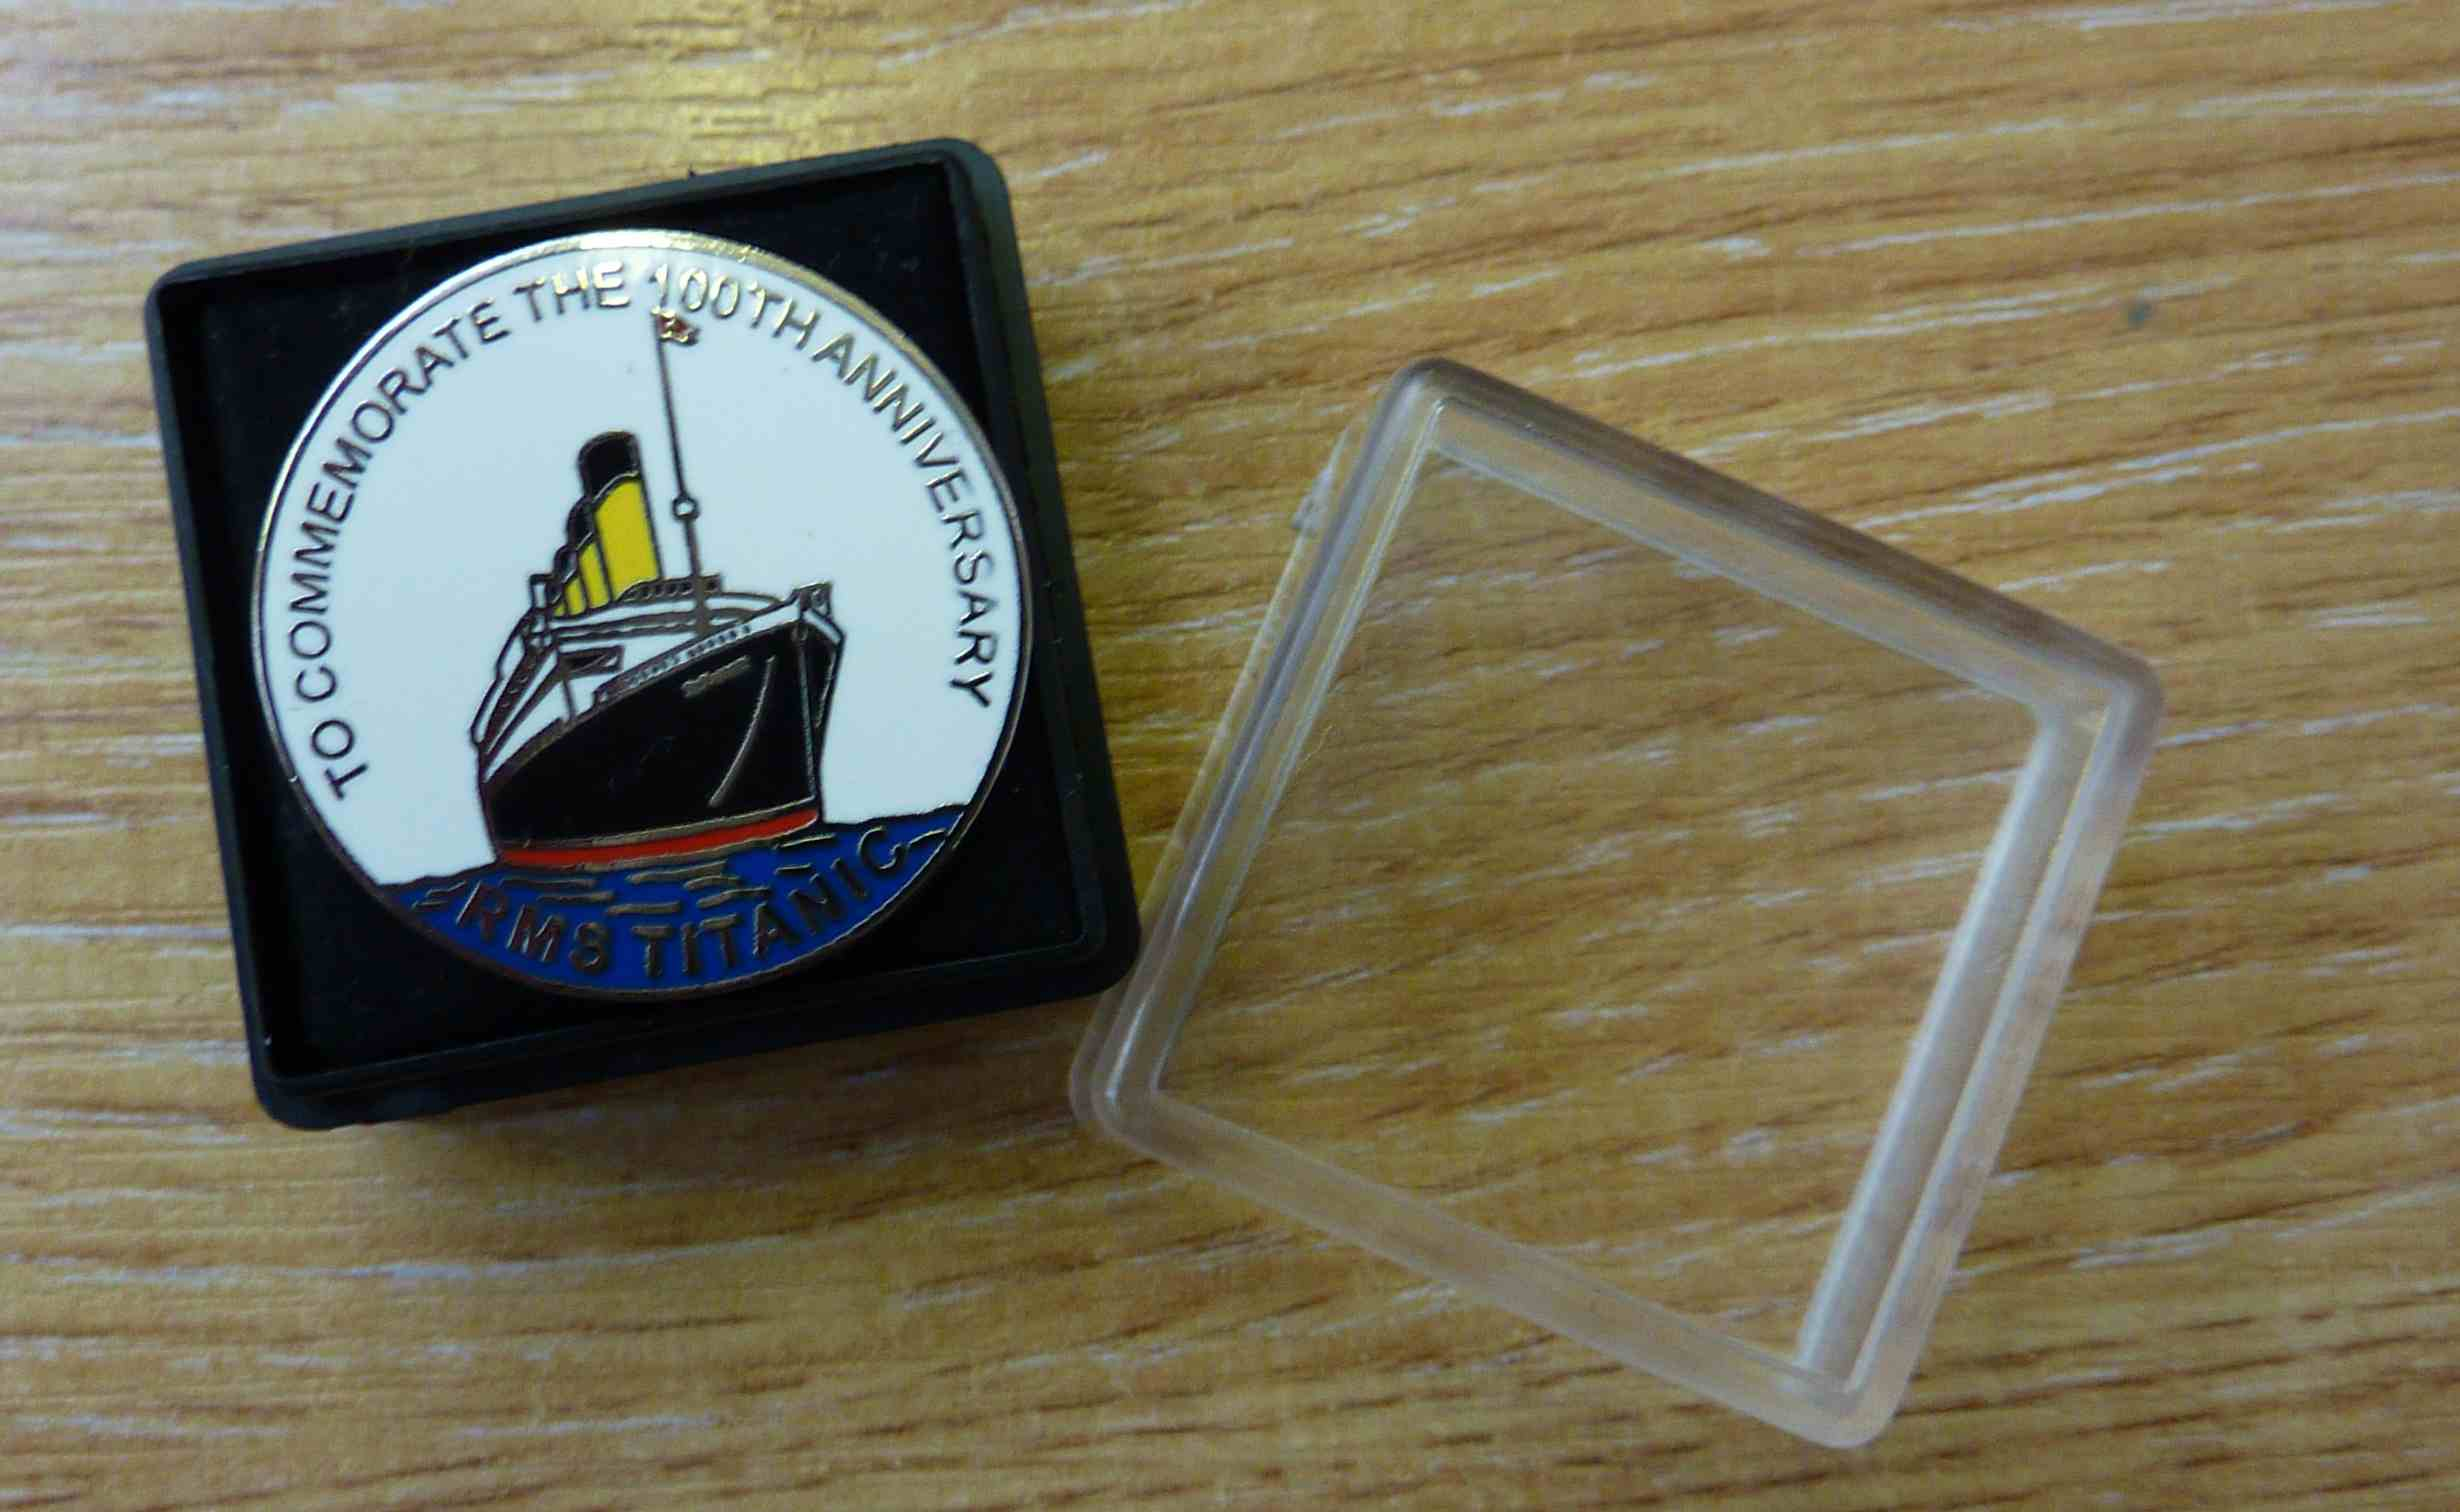 RMS Titanic 100th Anniversary Pin Badge - Click Image to Close